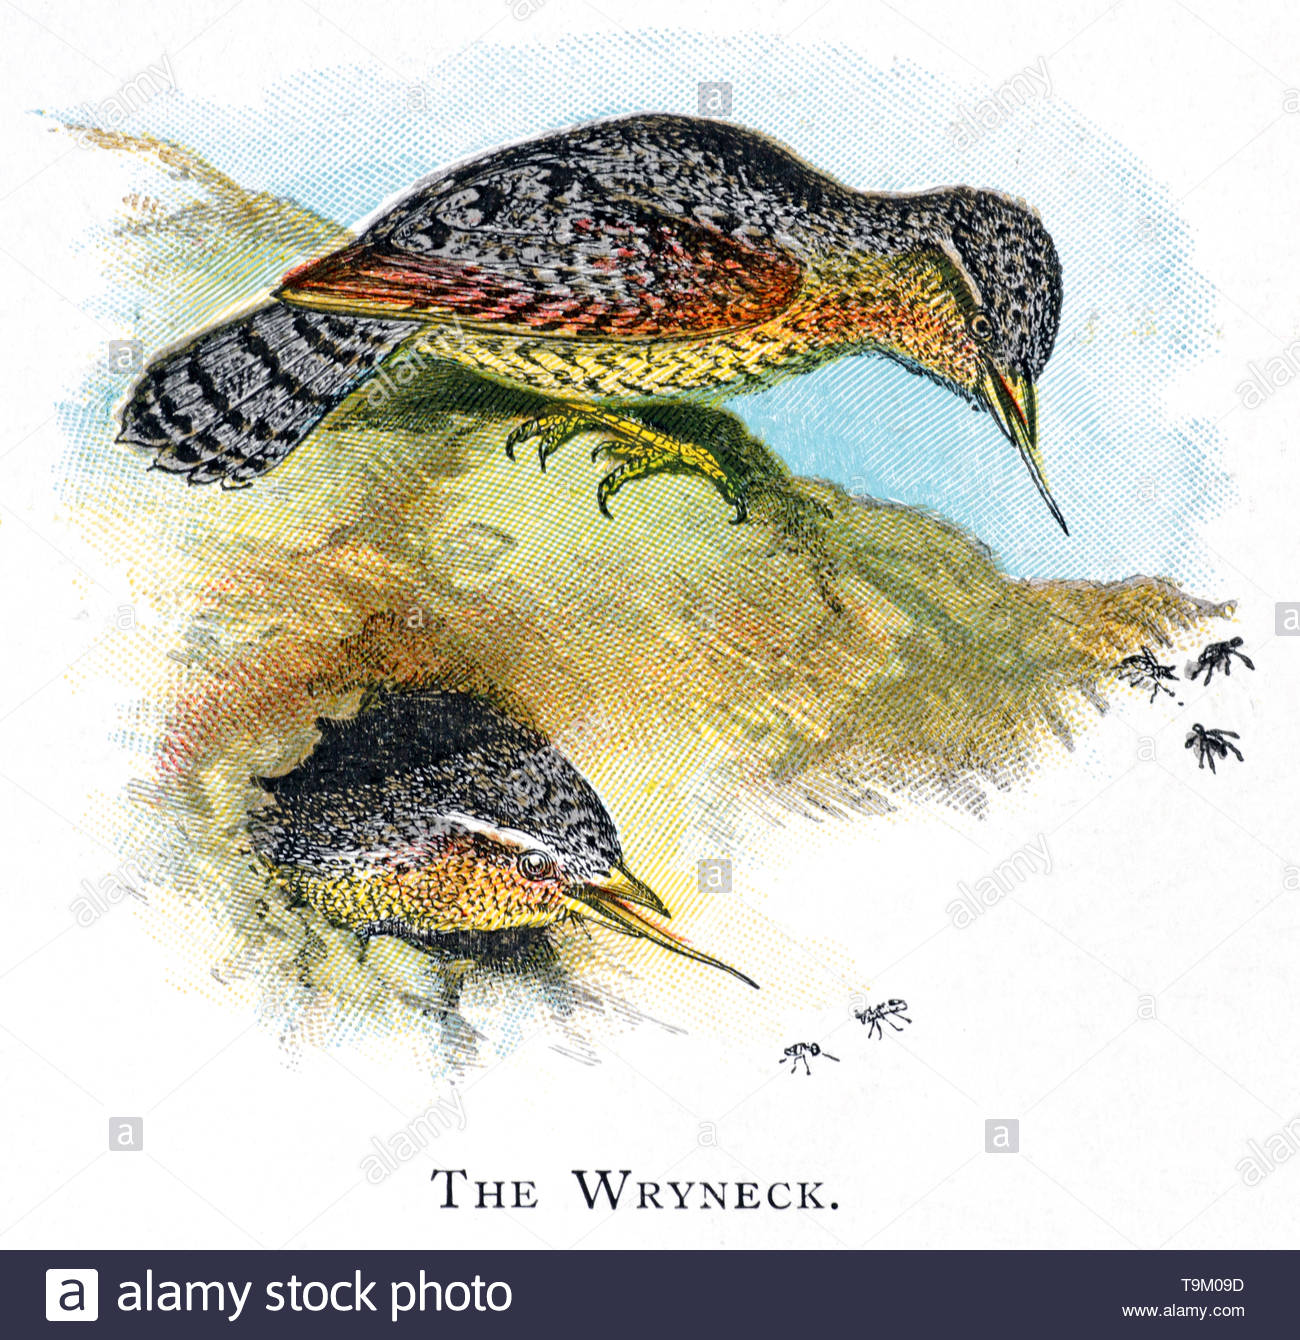 Wryneck (Jynx torquilla) at nest hole, vintage illustration published in 1898 Stock Photo